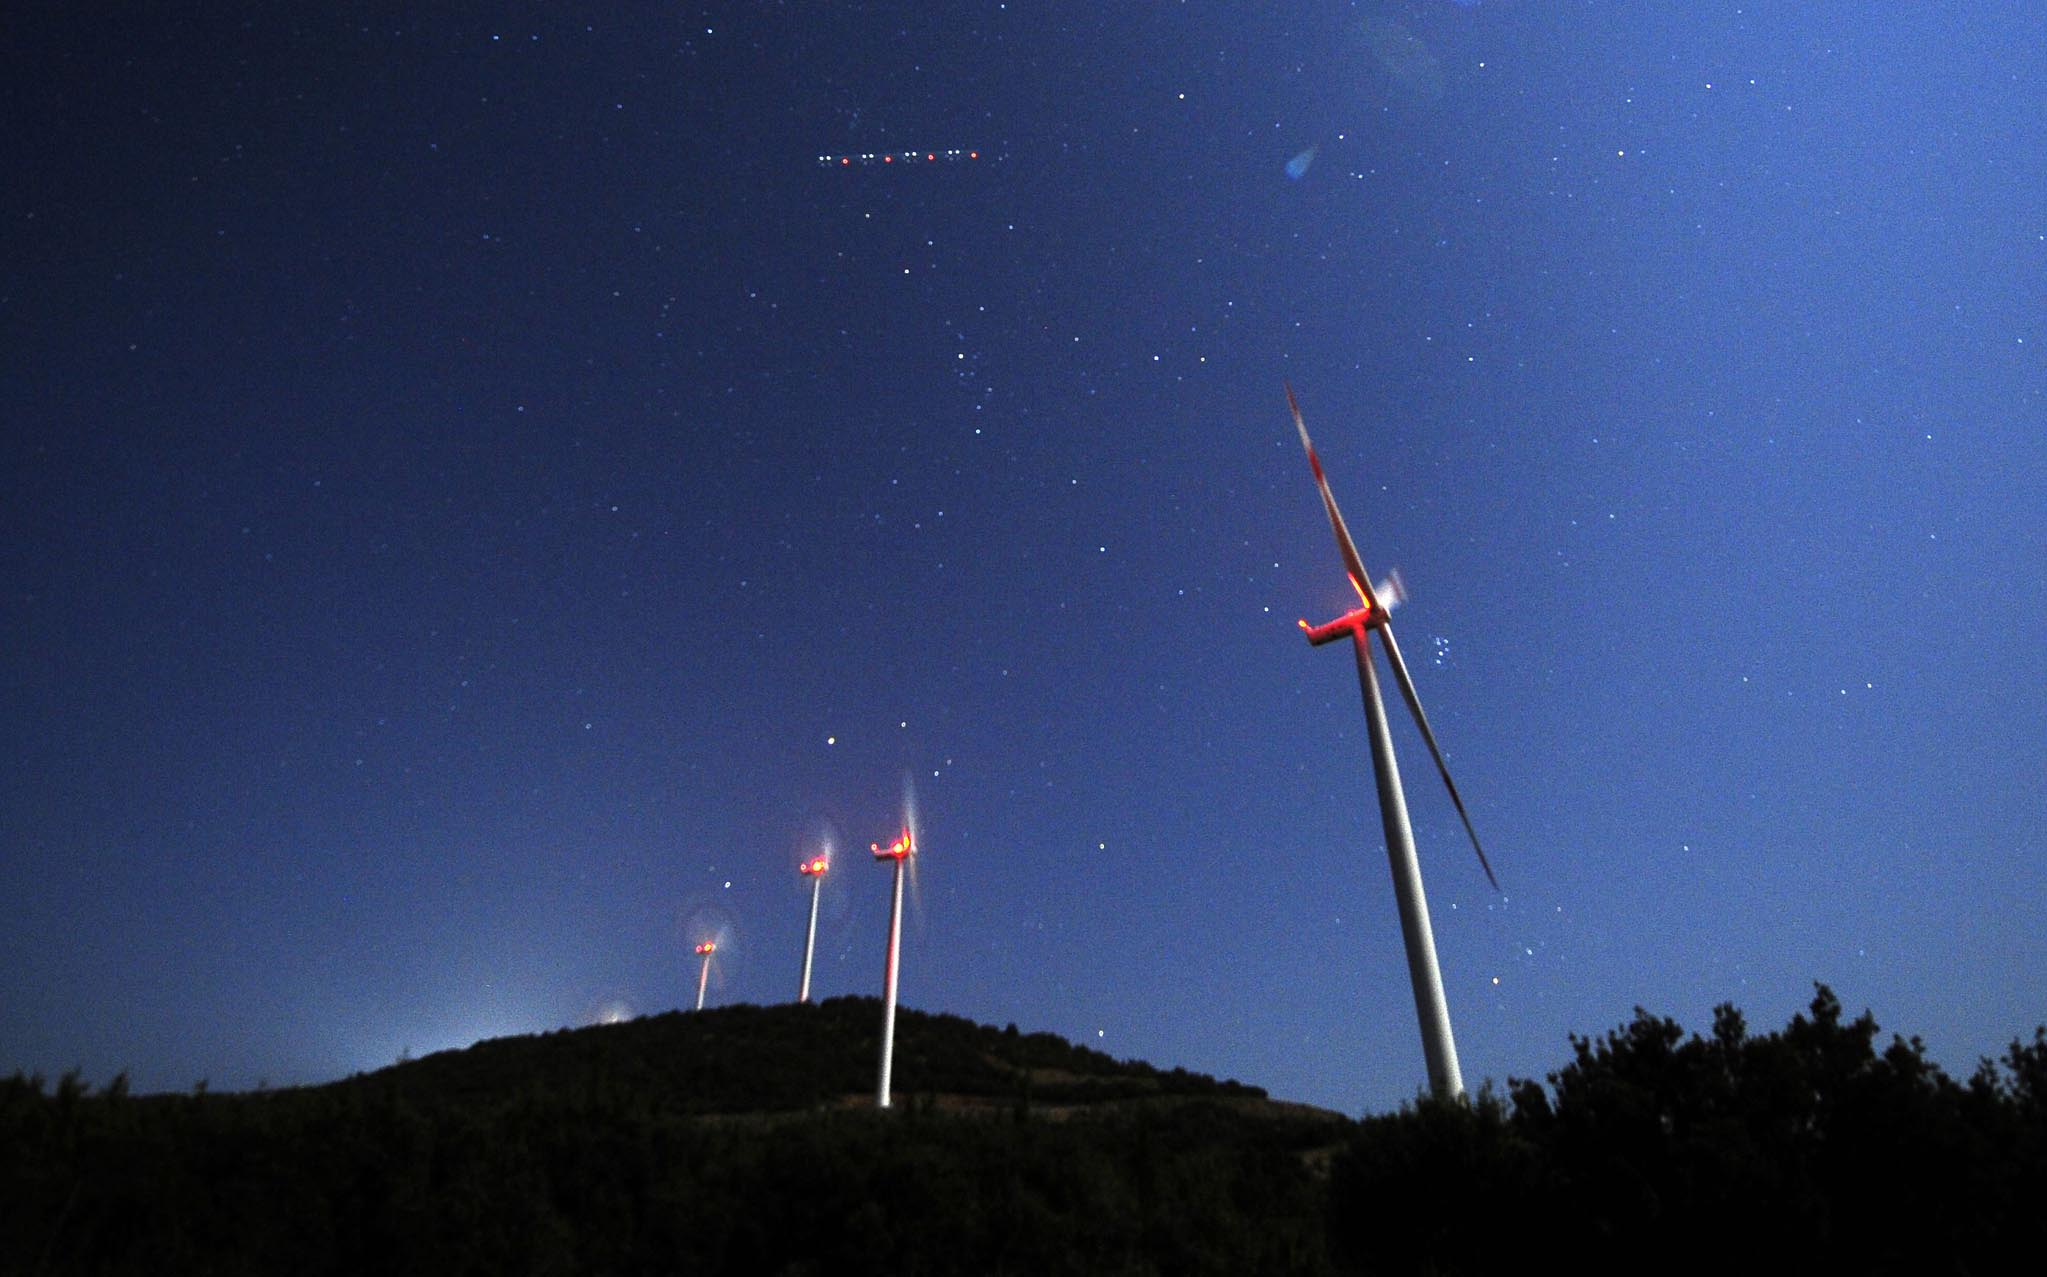 A aeroplane pases over the sky during the time of the Perseid meteor shower at a windmill farm near Bogdanci